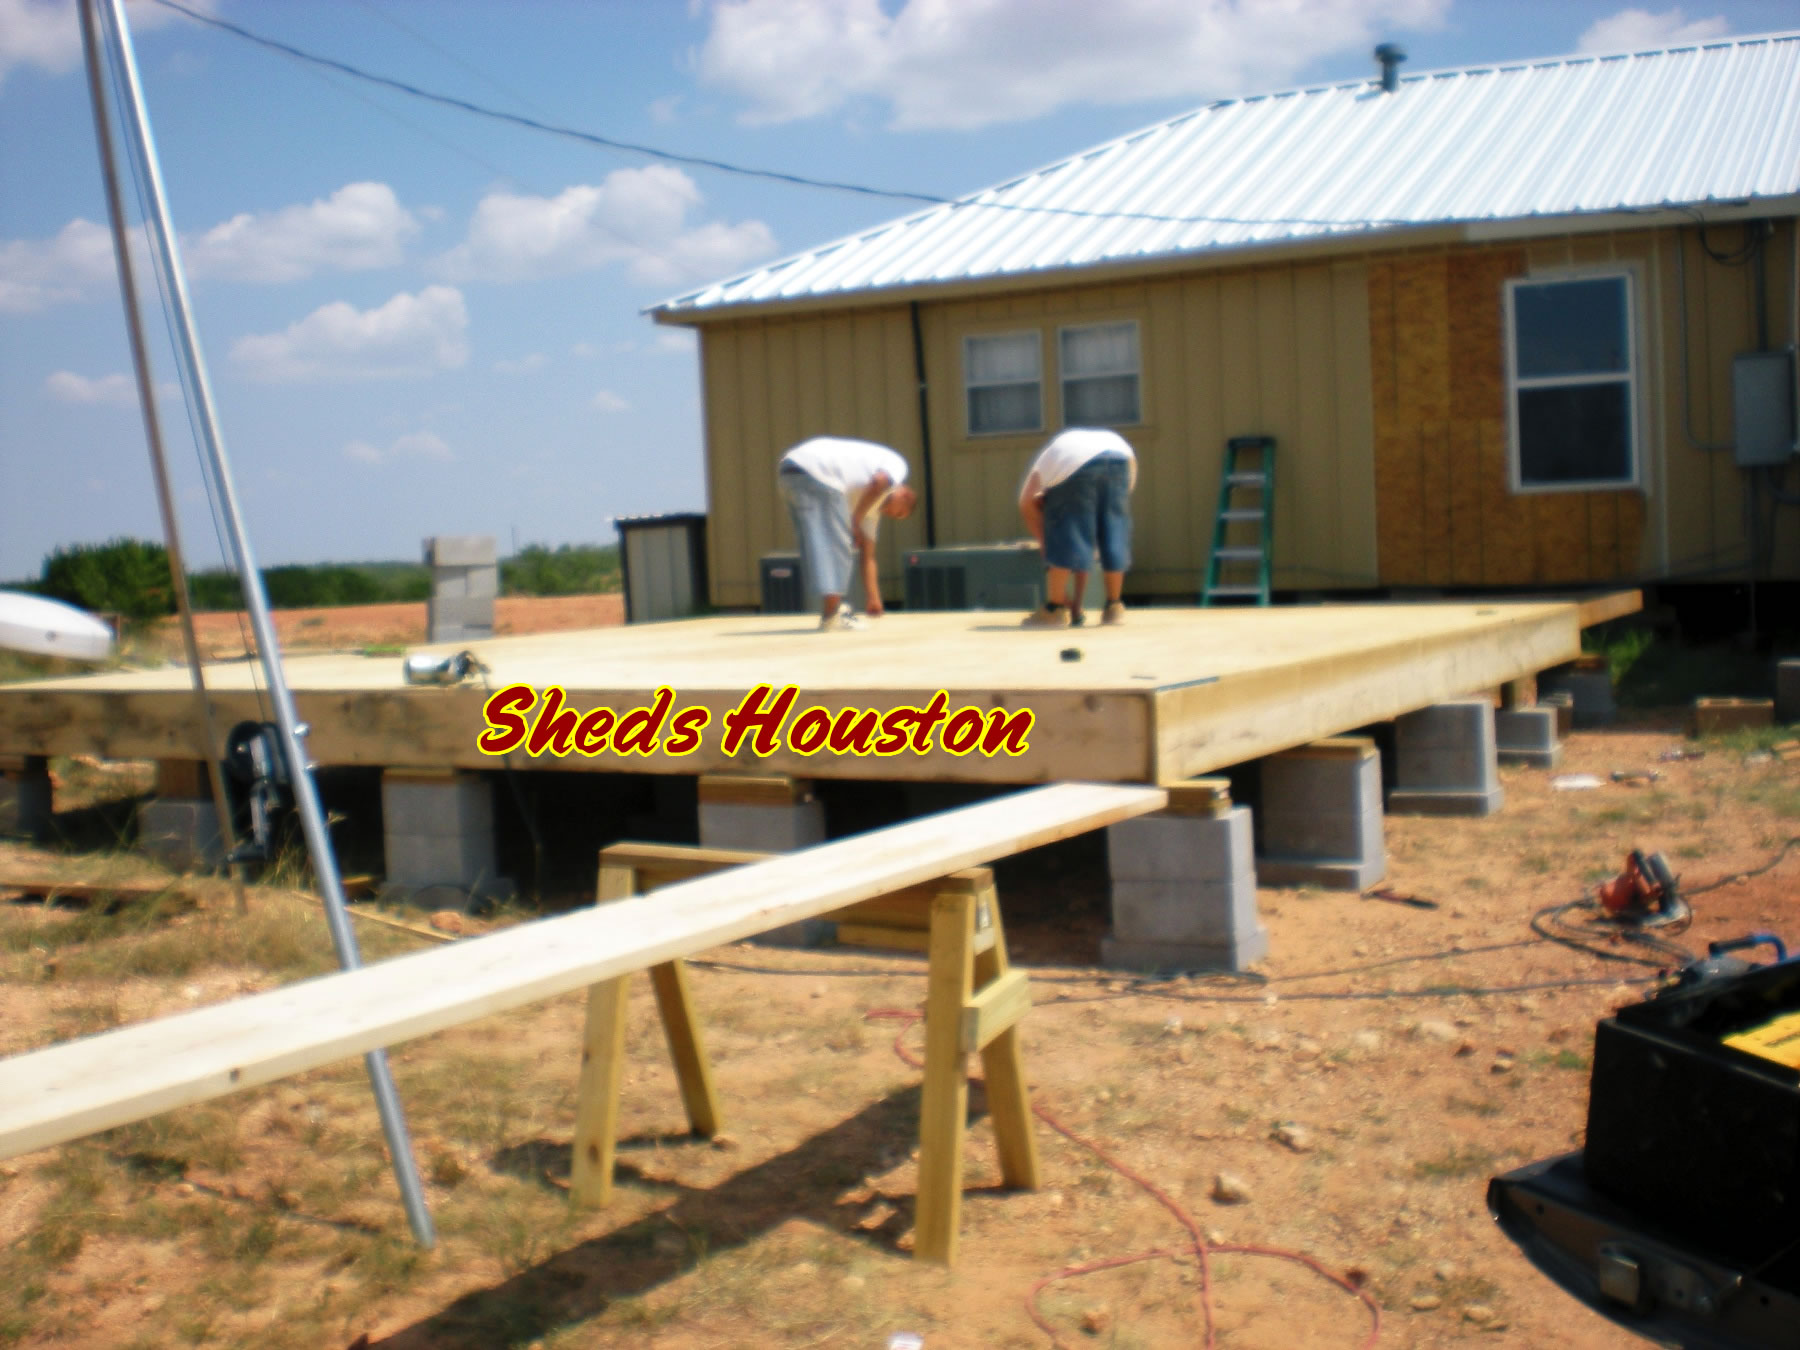 Photos Sheds Patios Roofing Repair Barns Humble Tx